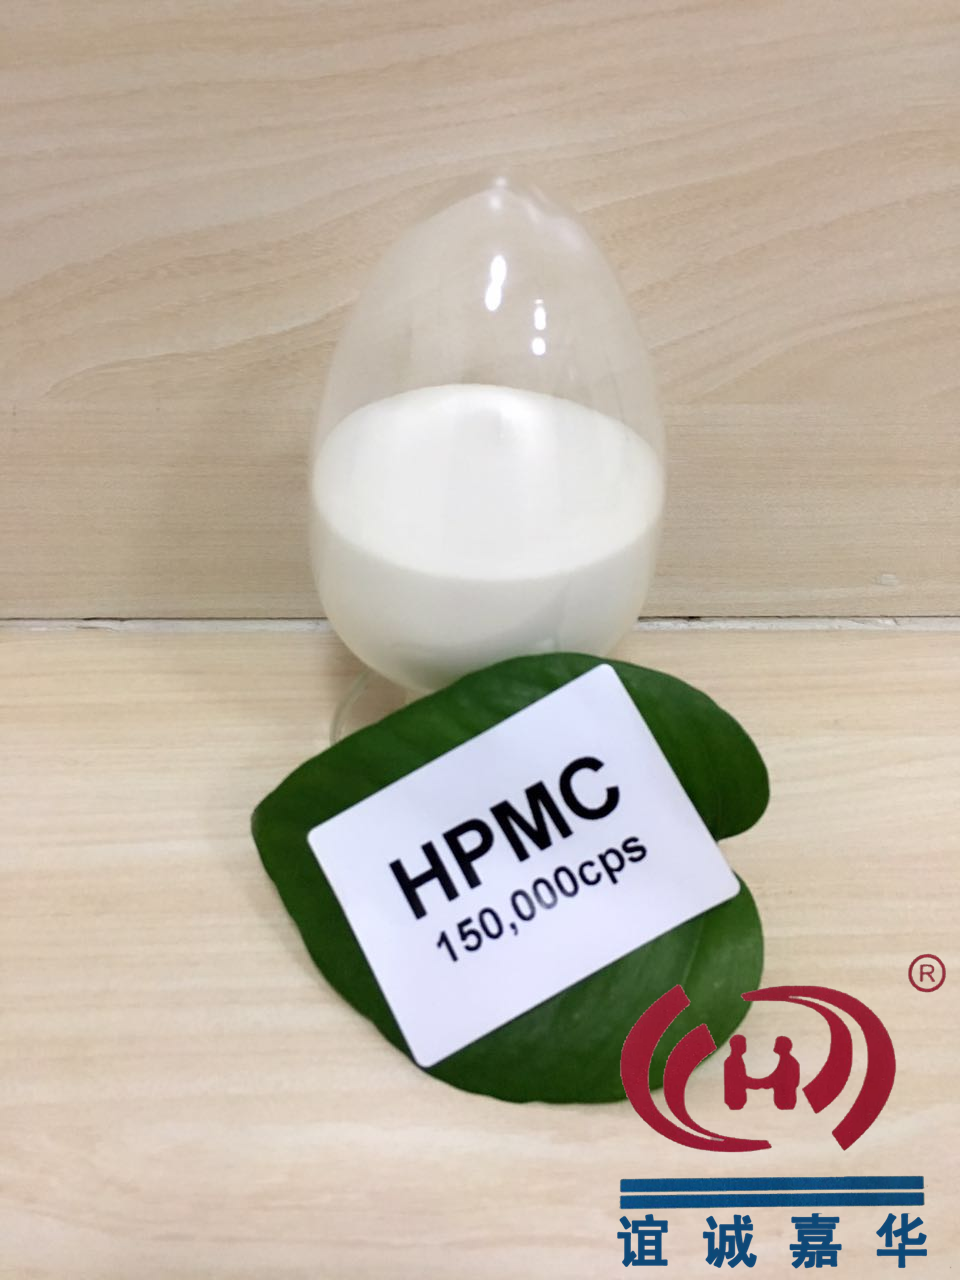 building grade construction grade HPMC cellulose